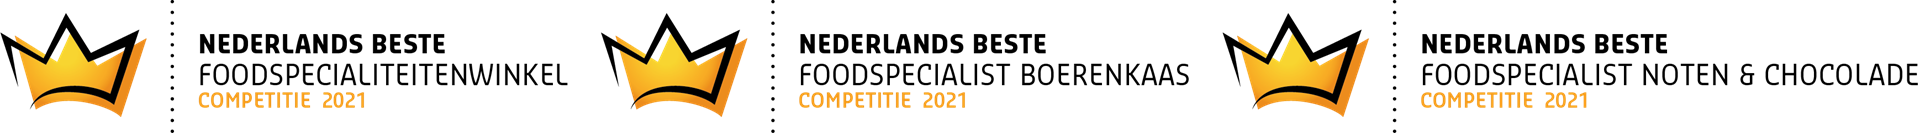 Logo's Nationale Competitie 2021